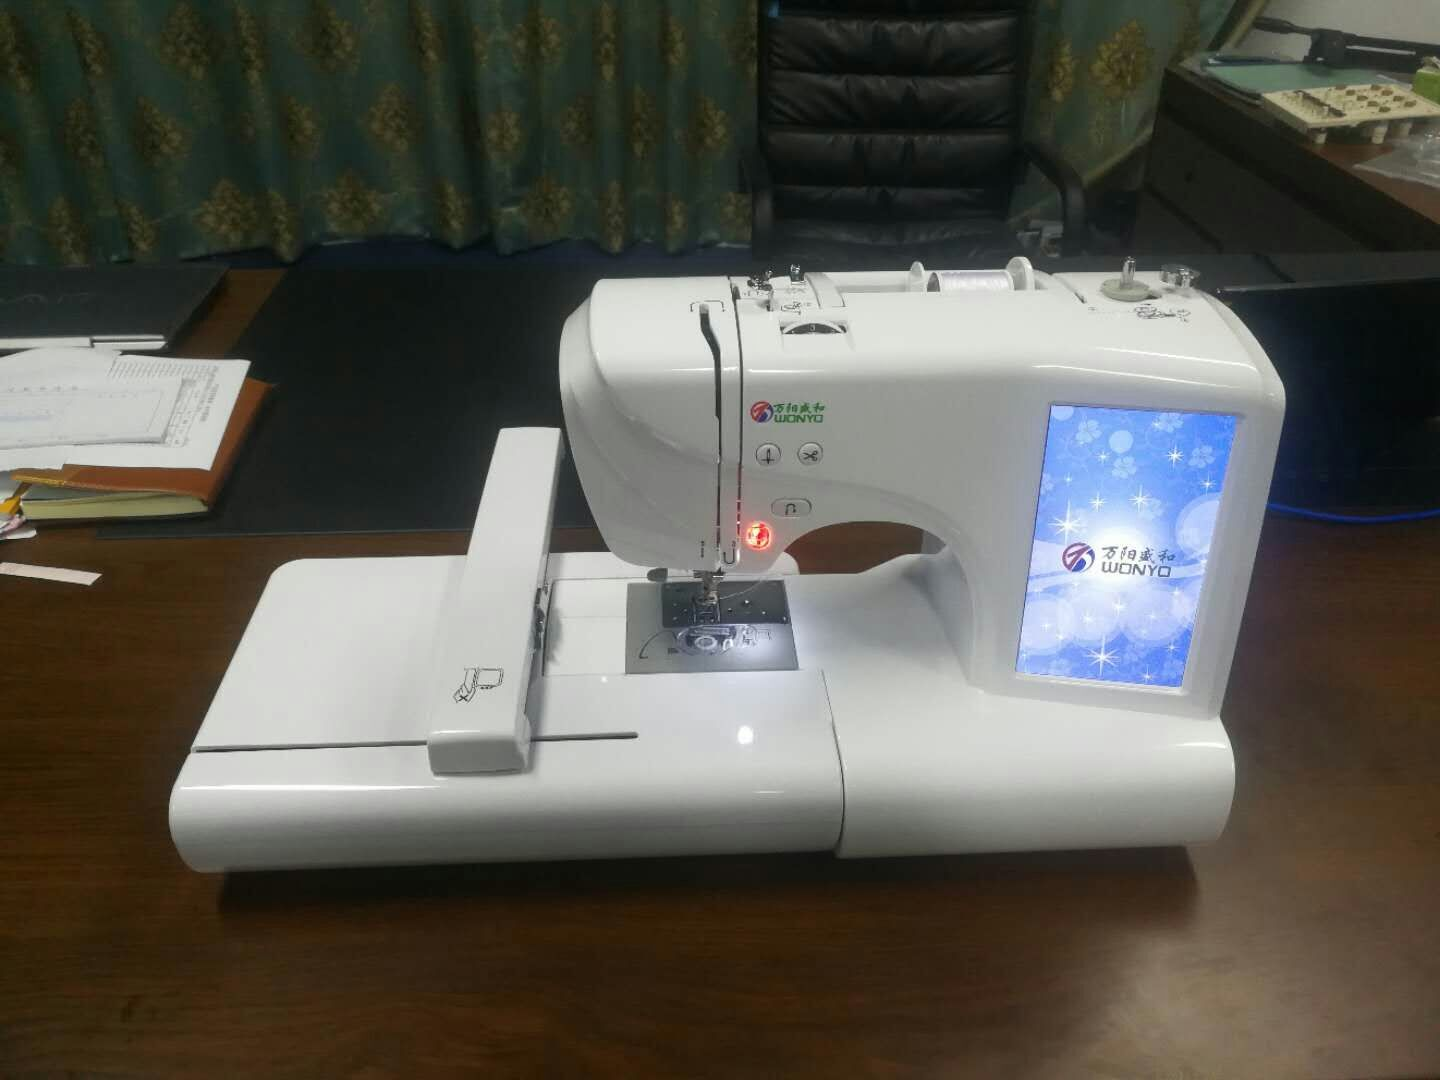 China Embroidery Sewing Machine is Similar to Janome Embroidery Machine,  67 Sewing Ways